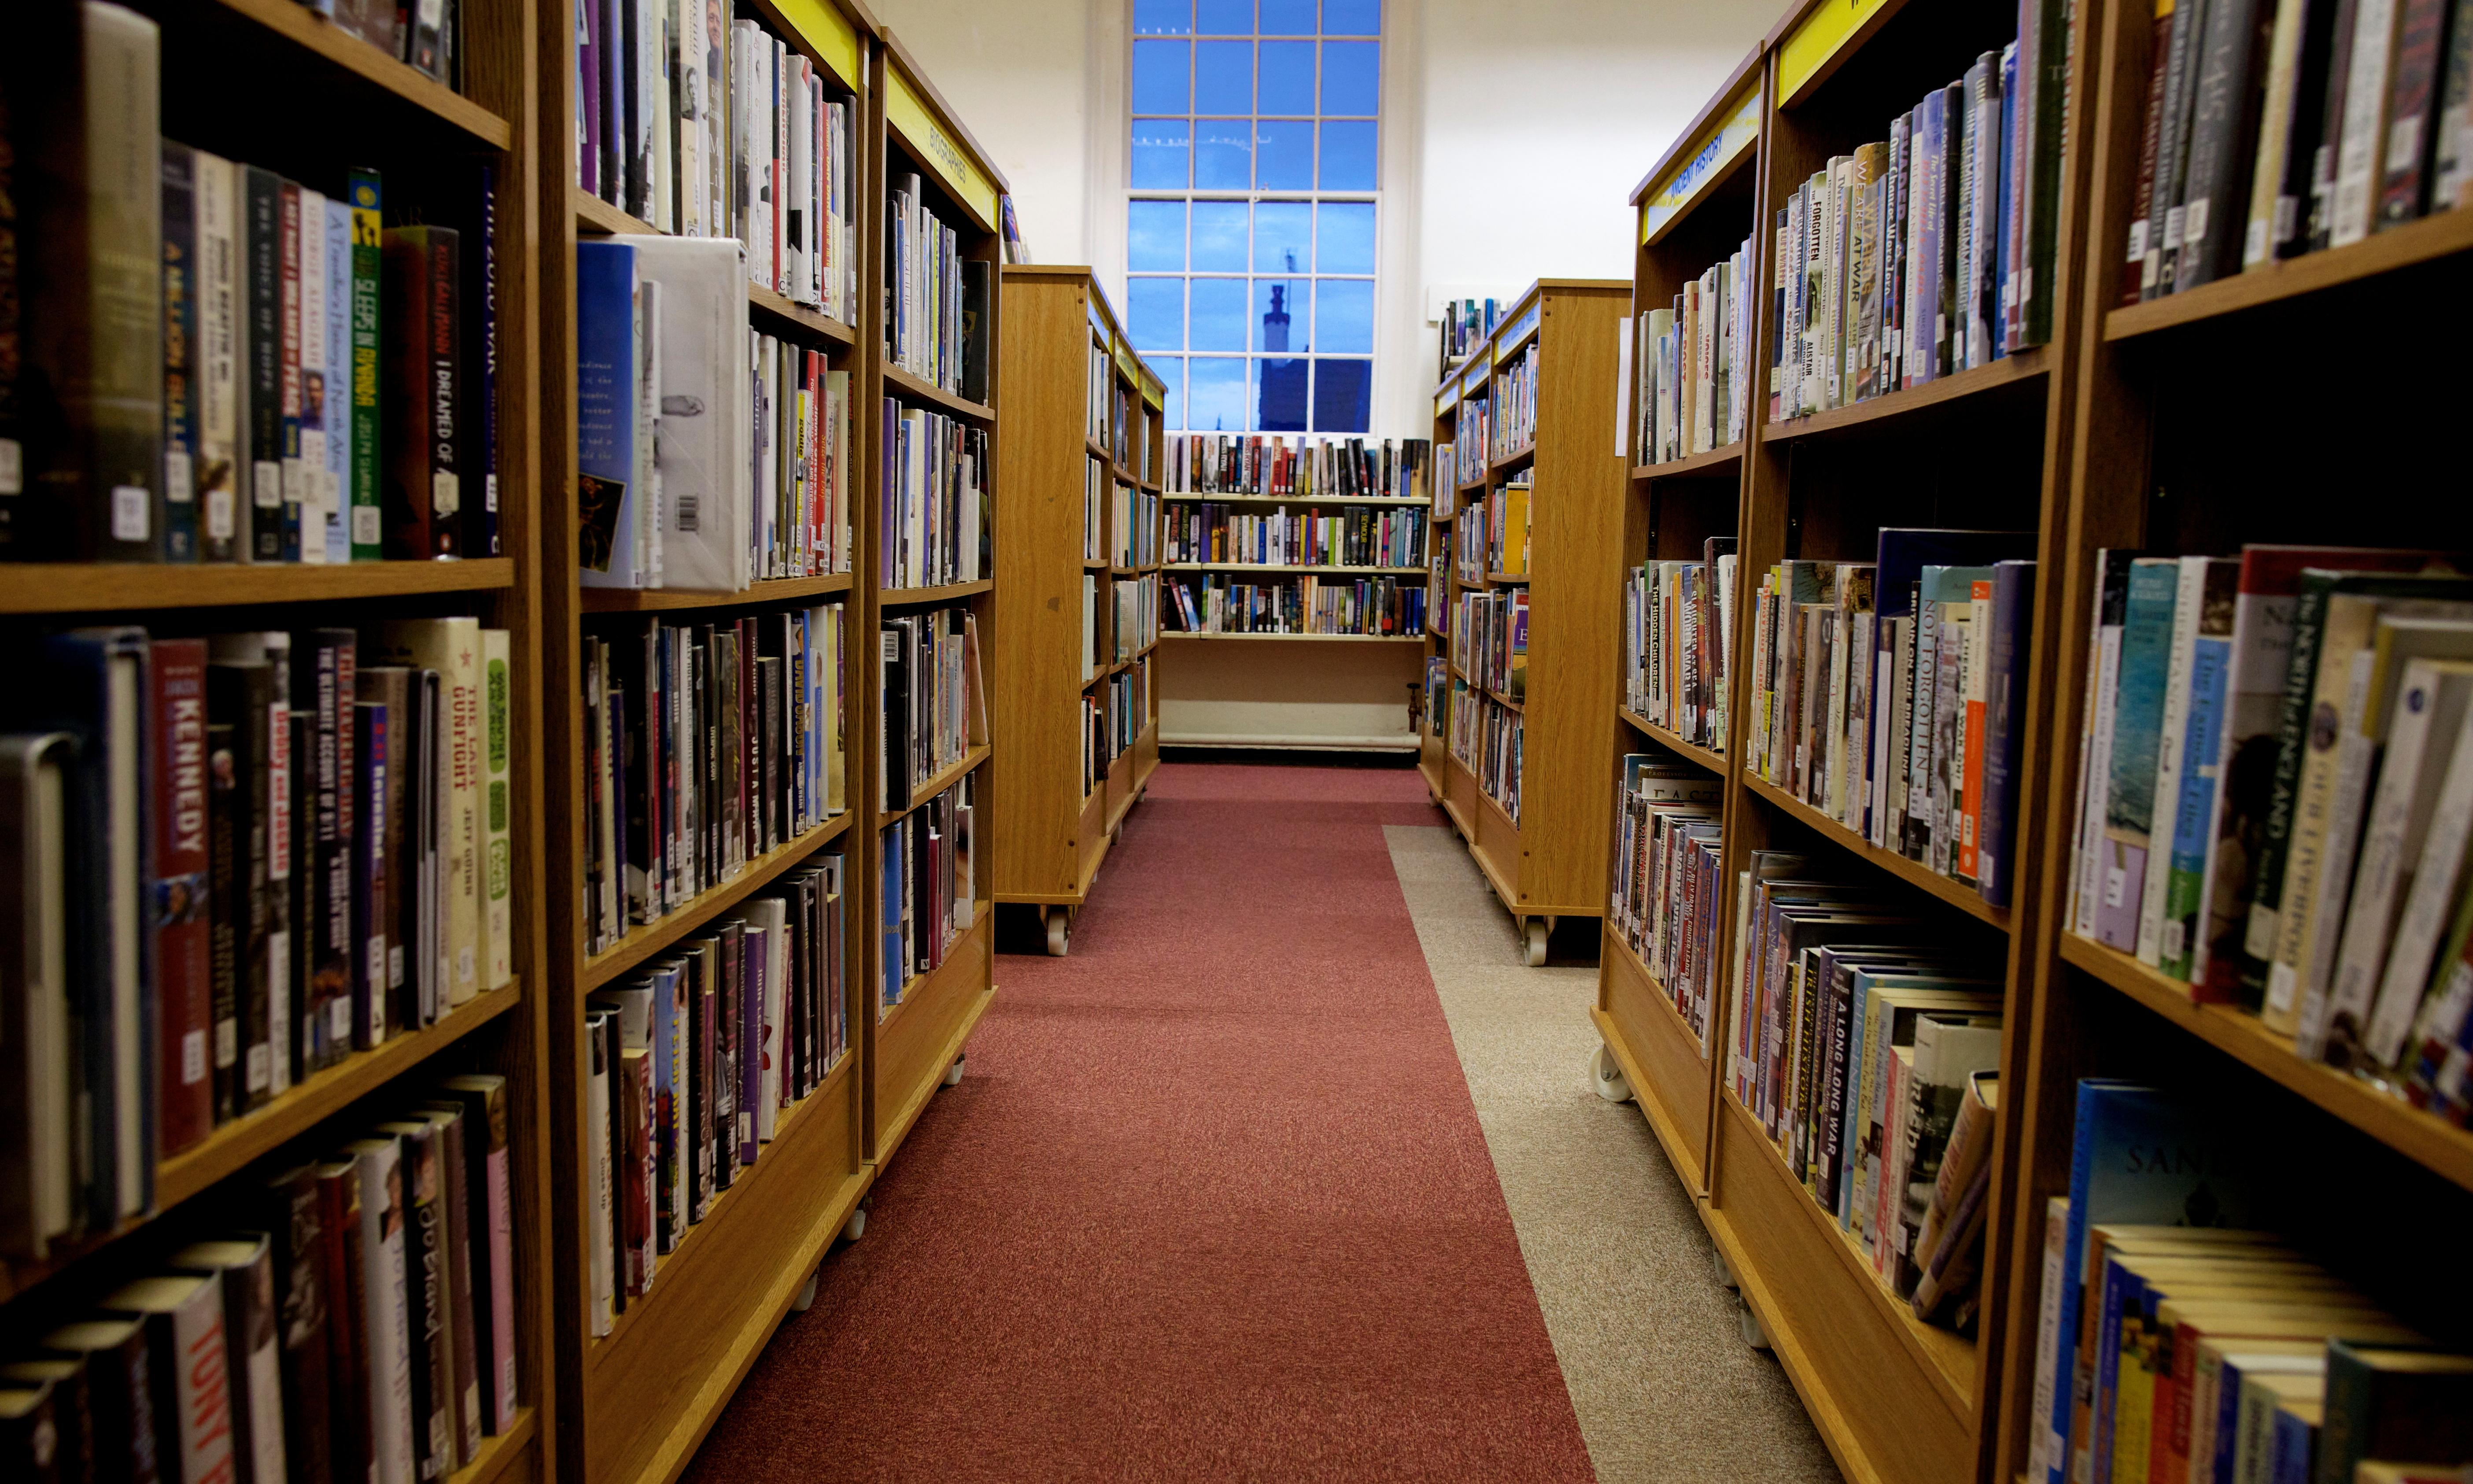 Britain has closed almost 800 libraries since 2010, figures show